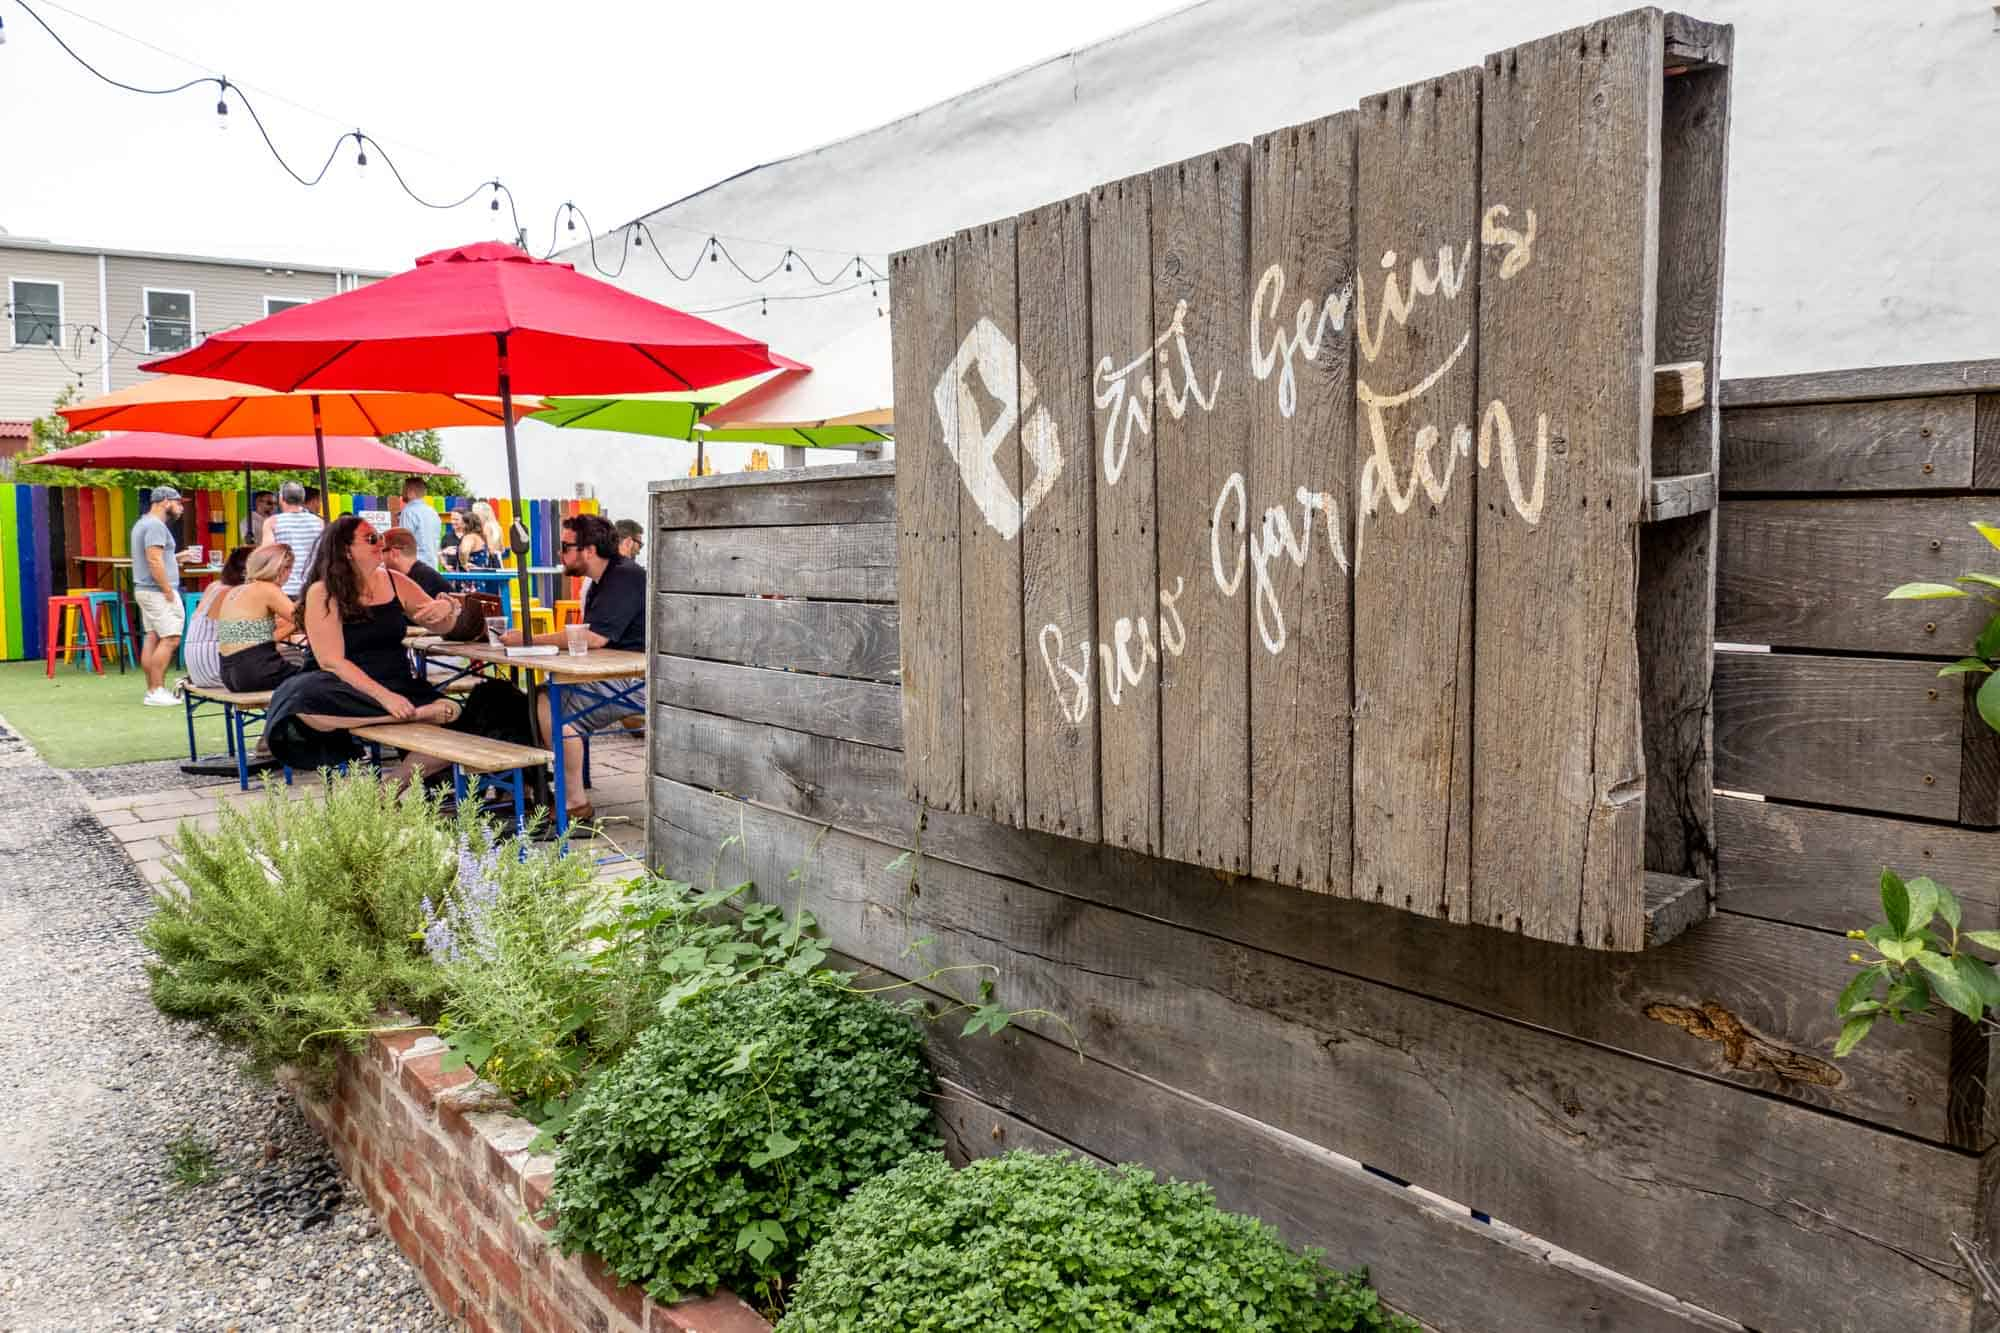 """Sign reading """"Evil Genius beer garden"""" in front of tables with colorful umbrellas"""